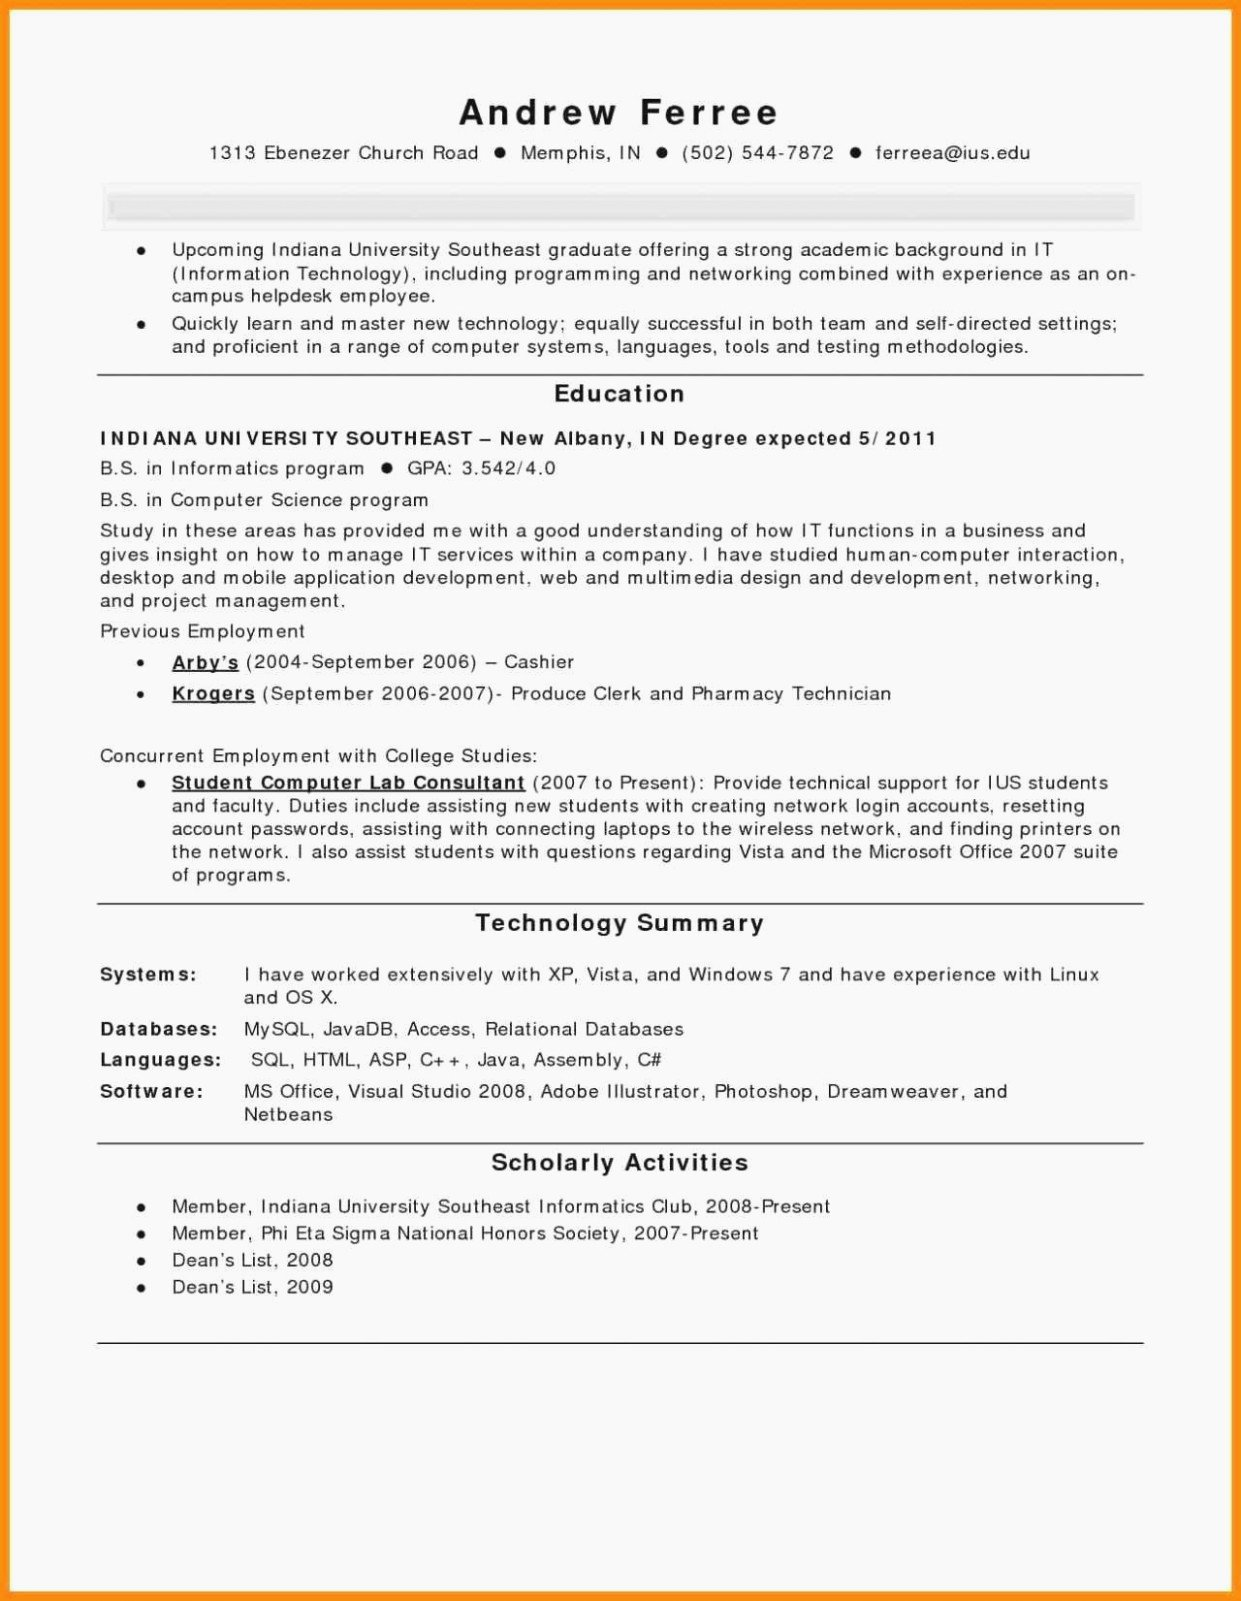 Resume with Honors Luxury 10 How to List Honor society Resume